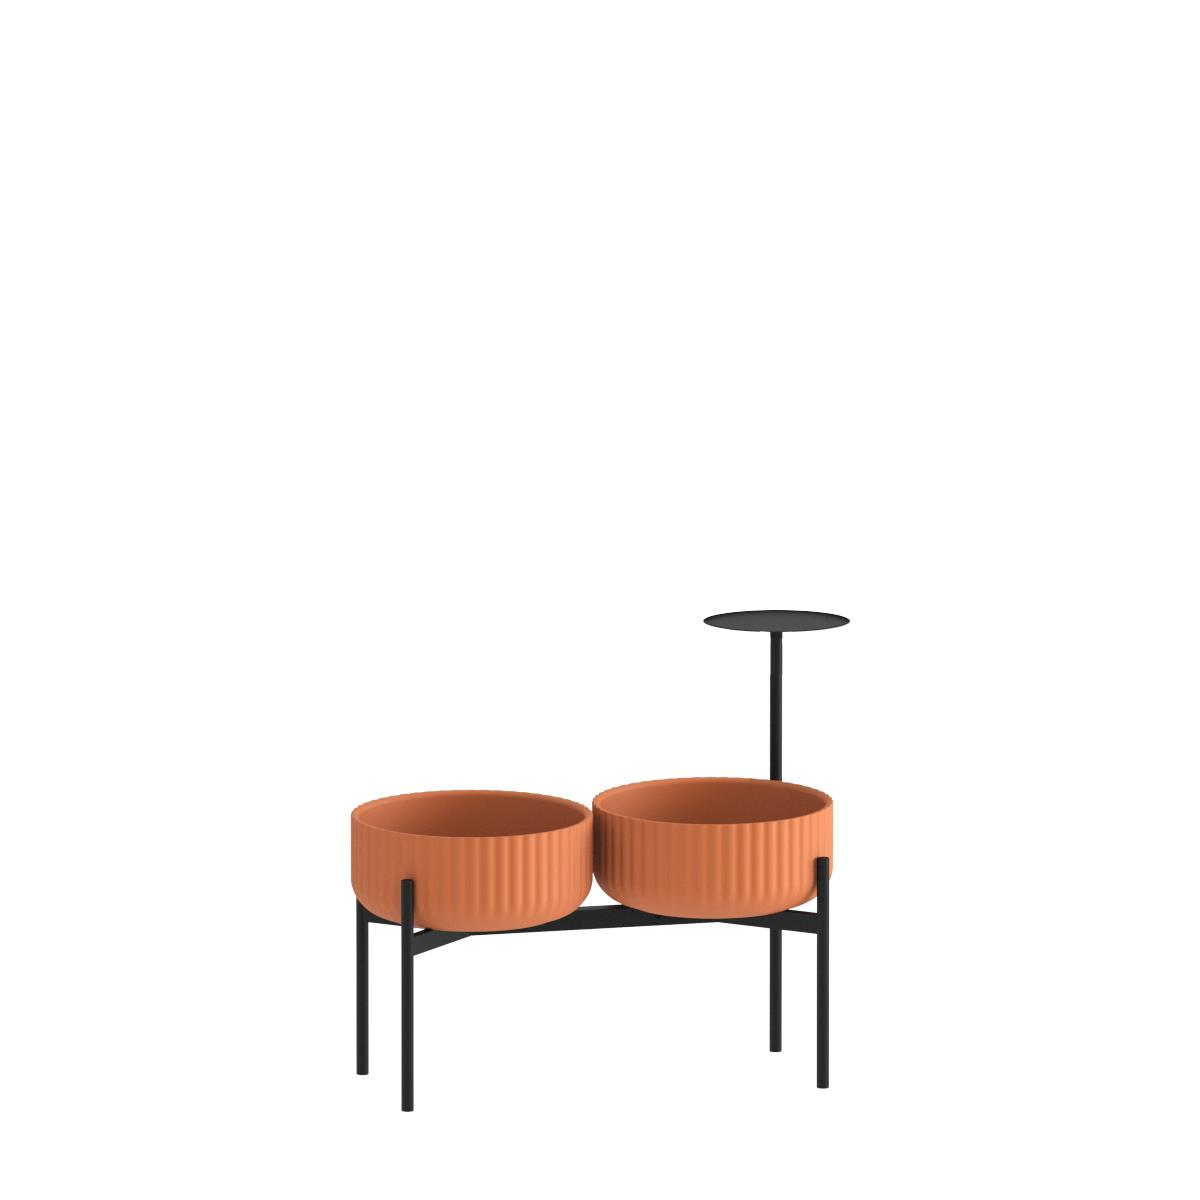 Klorofyll Double Medium Base & Low Planters with Round Table